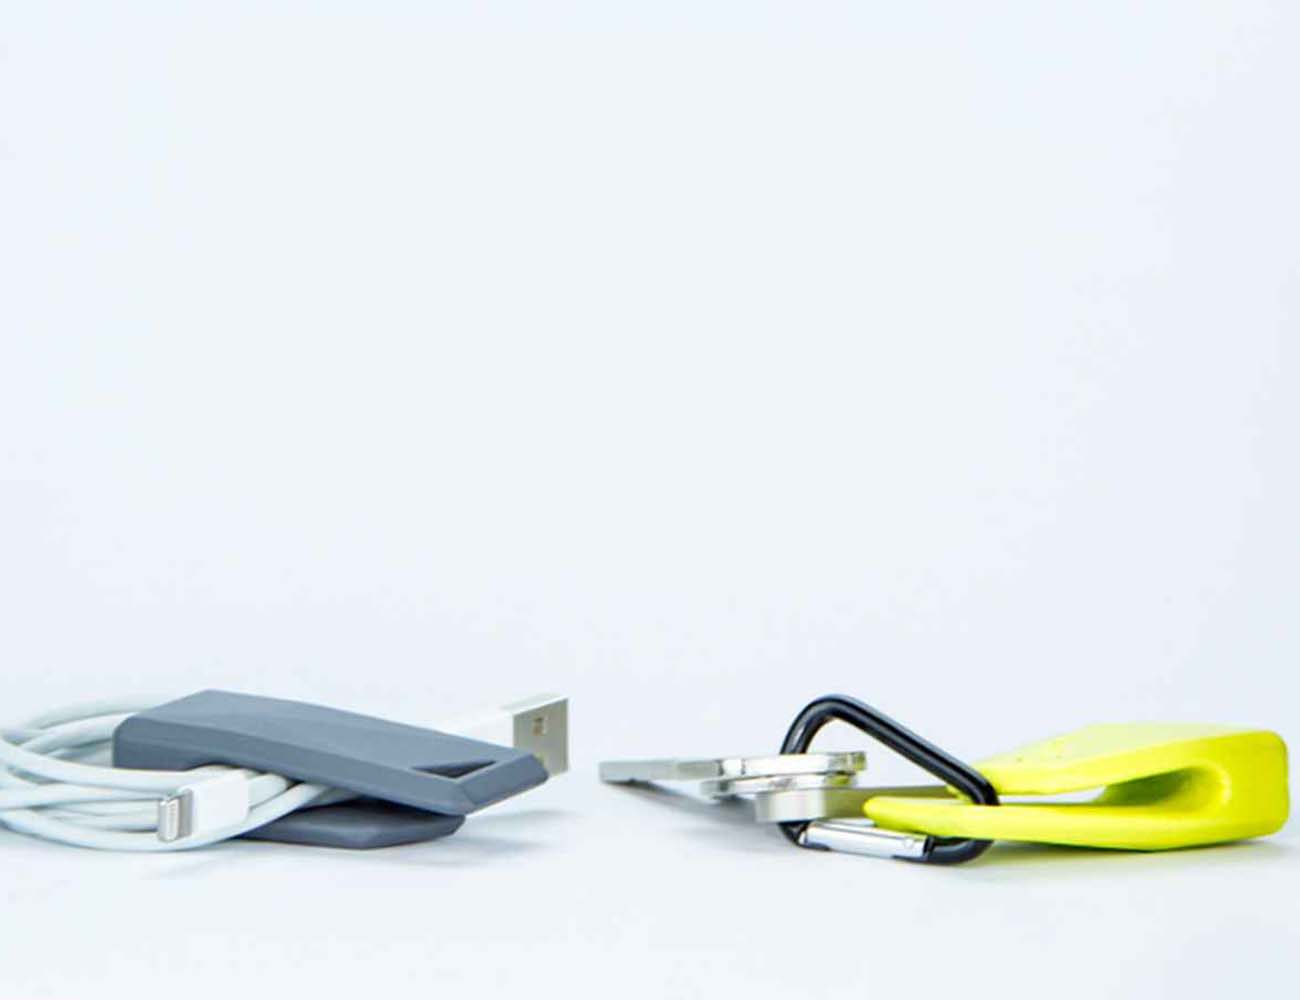 Stikey – Portable Magnetic Stand And Cable Tidy, On Your Keys!